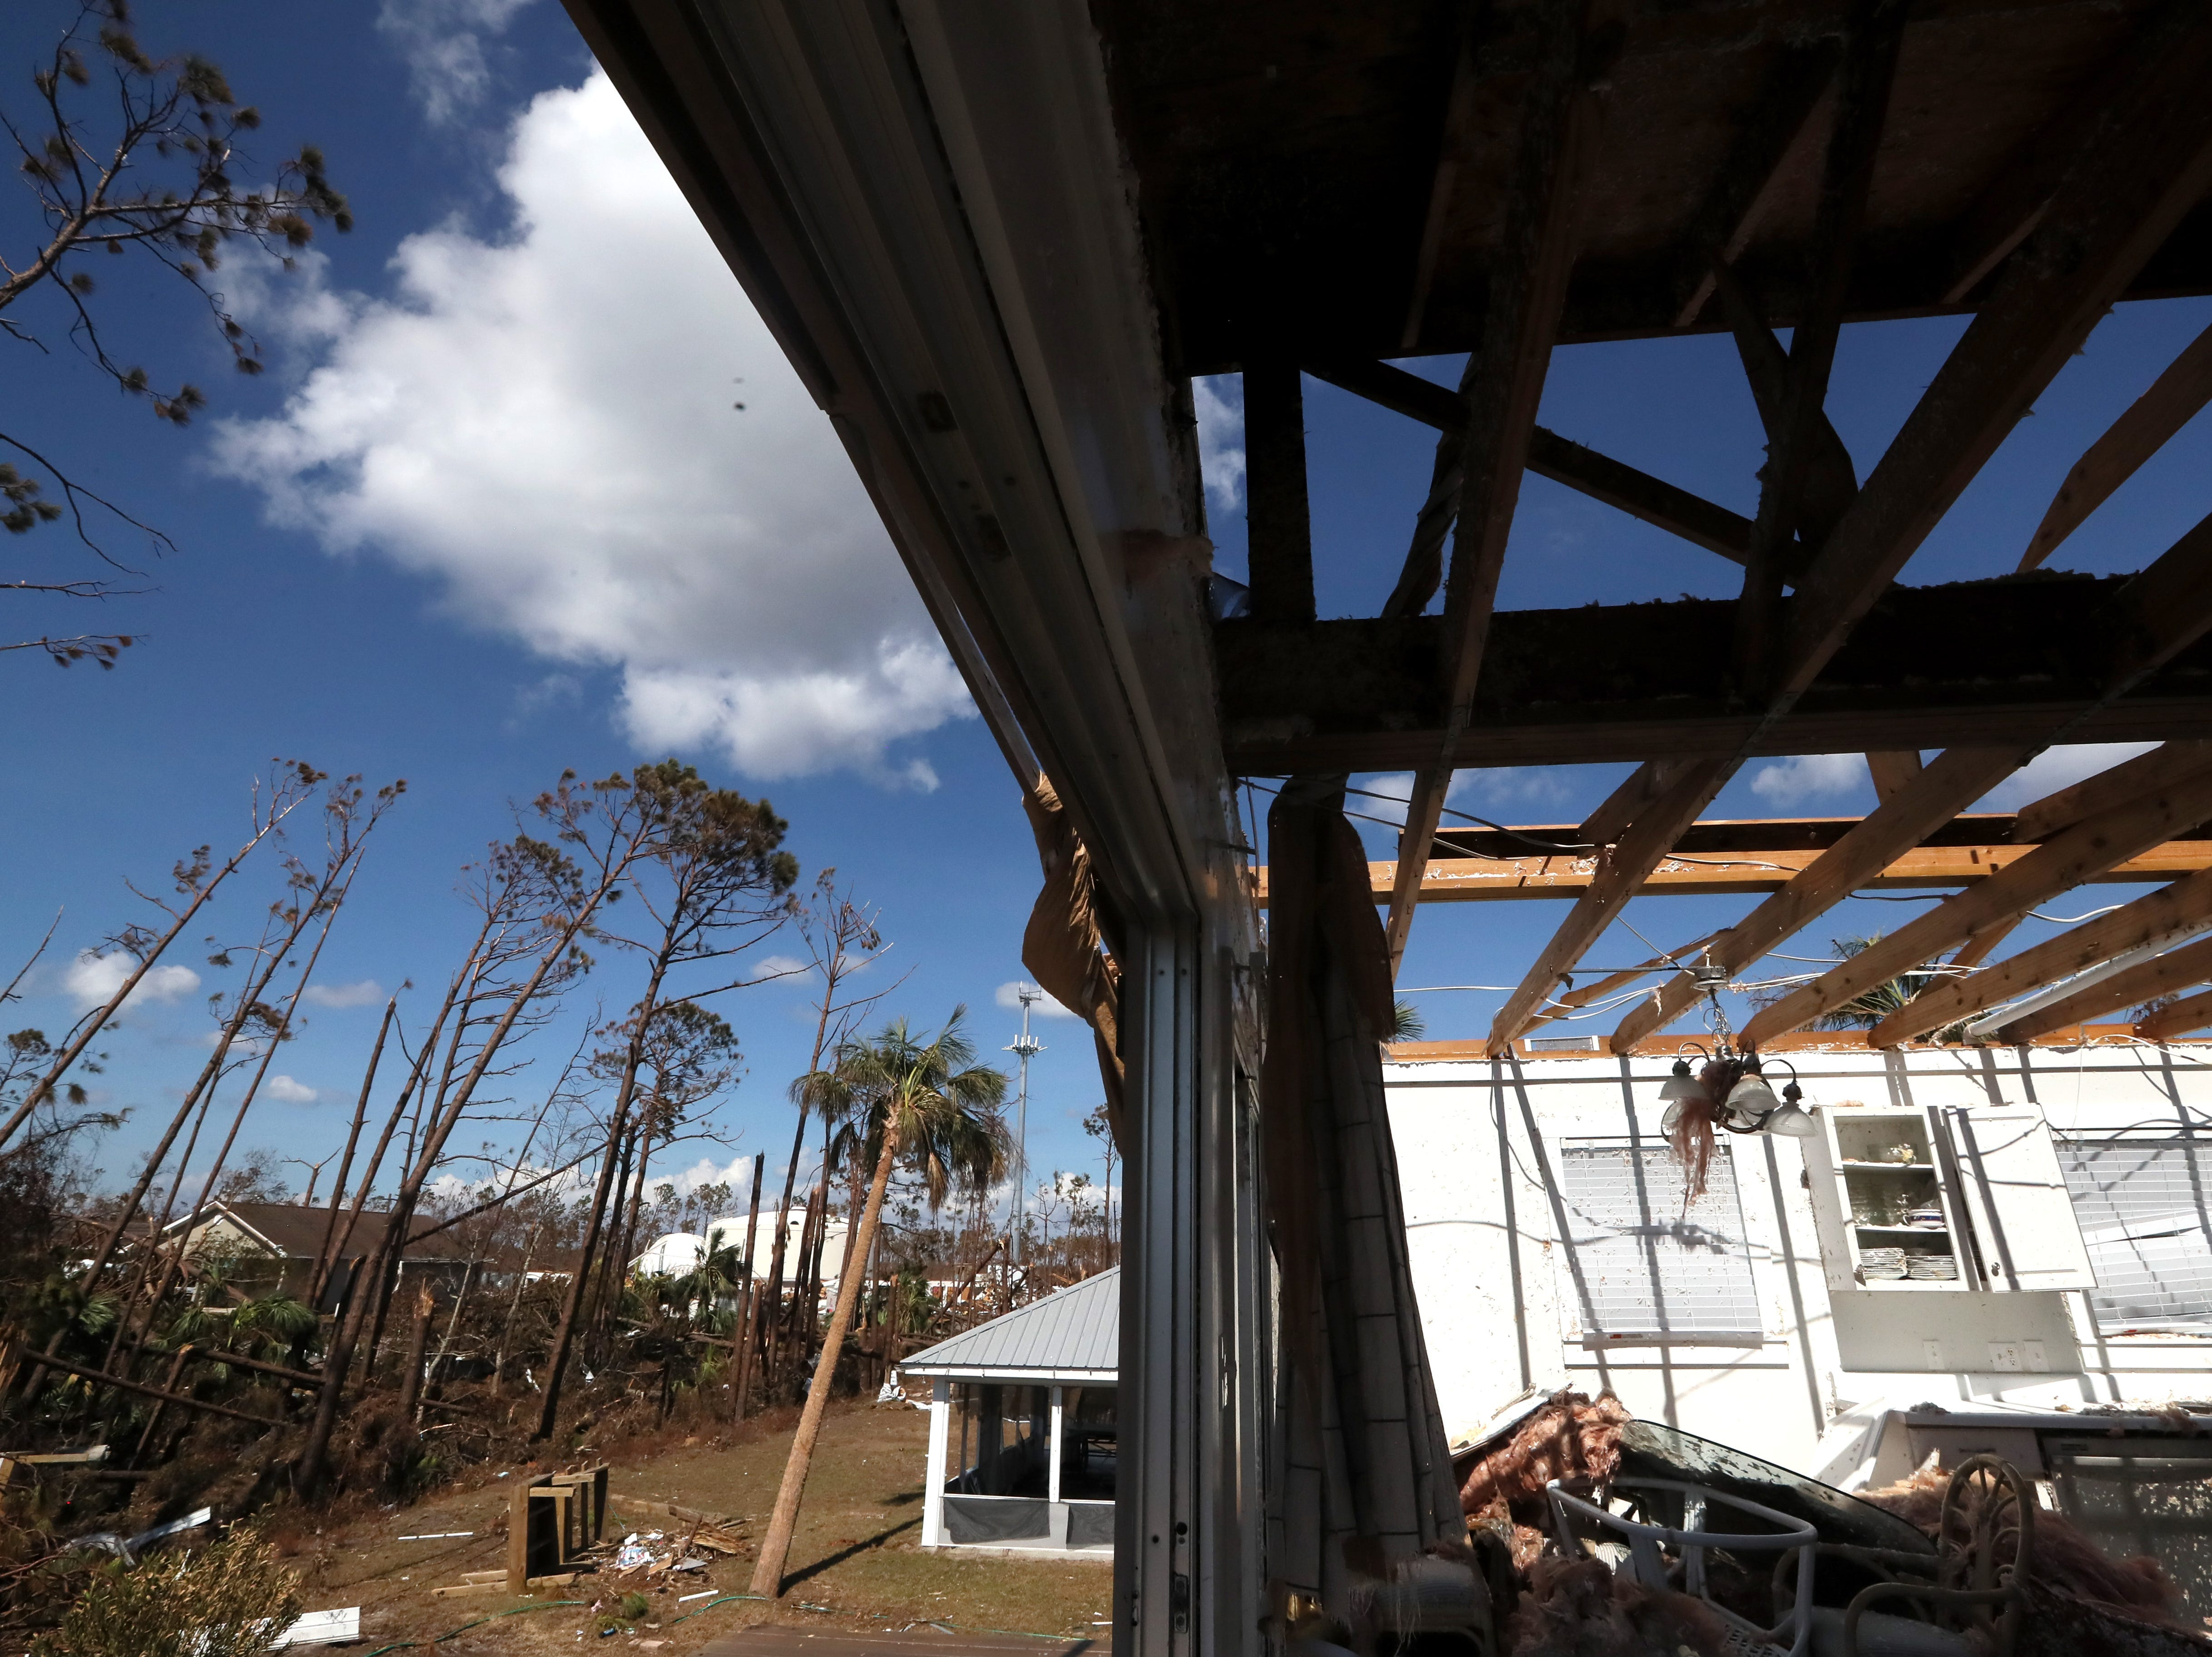 An open sky is seen through the roof of the Redd family vacation home in Mexico Beach on Wednesday, Oct. 17, 2018, one week after Hurricane Michael ripped through the coastal Florida town.